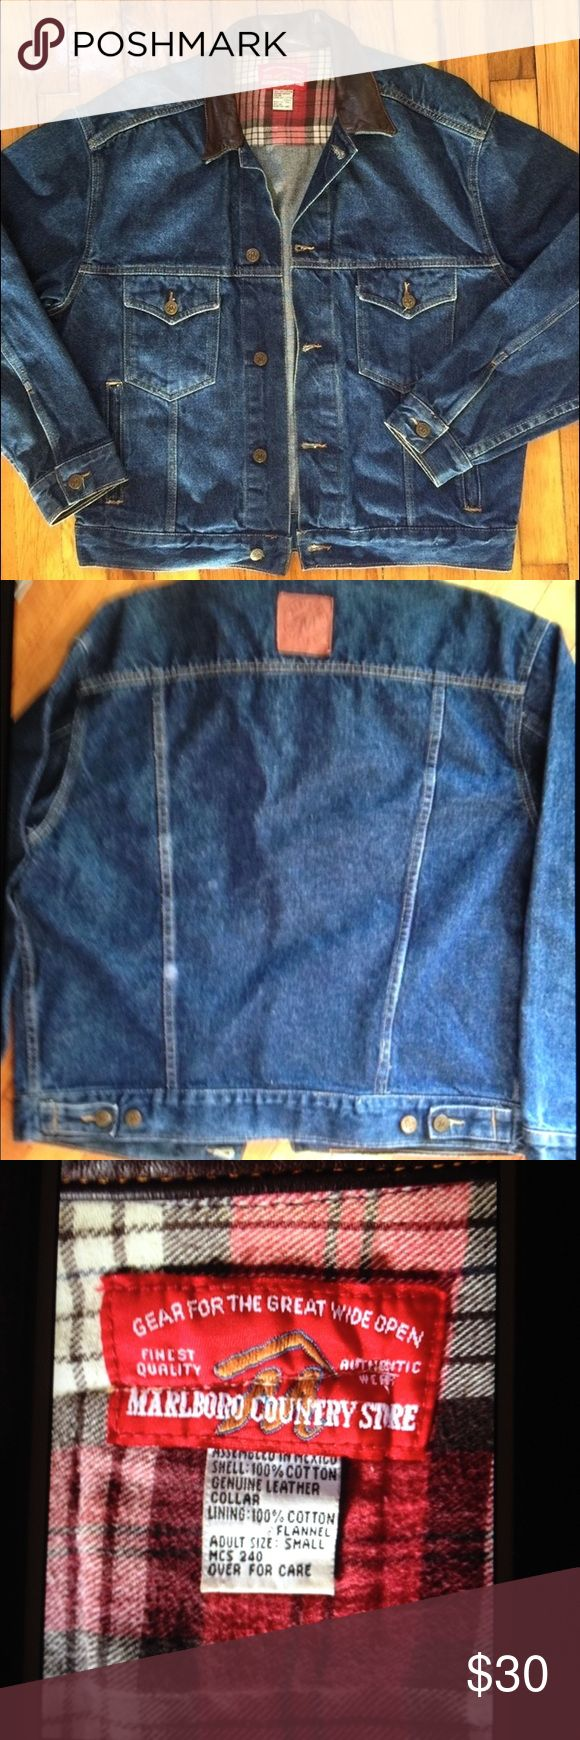 "Denim ""Marlboro"" Jacket w/ Leather Collar Size S Awesome Denim ""Marlboro"" Jacket with leather collar.⬛️ Size Small but runs big. I'd say it's prob close to Women's XL or Mens Large.⬛️ Measurements: 24"" armpit to armpit X 26"".⬛️ New never worn.⬛️ Listing as XL Marlboro  Jackets & Coats Jean Jackets"